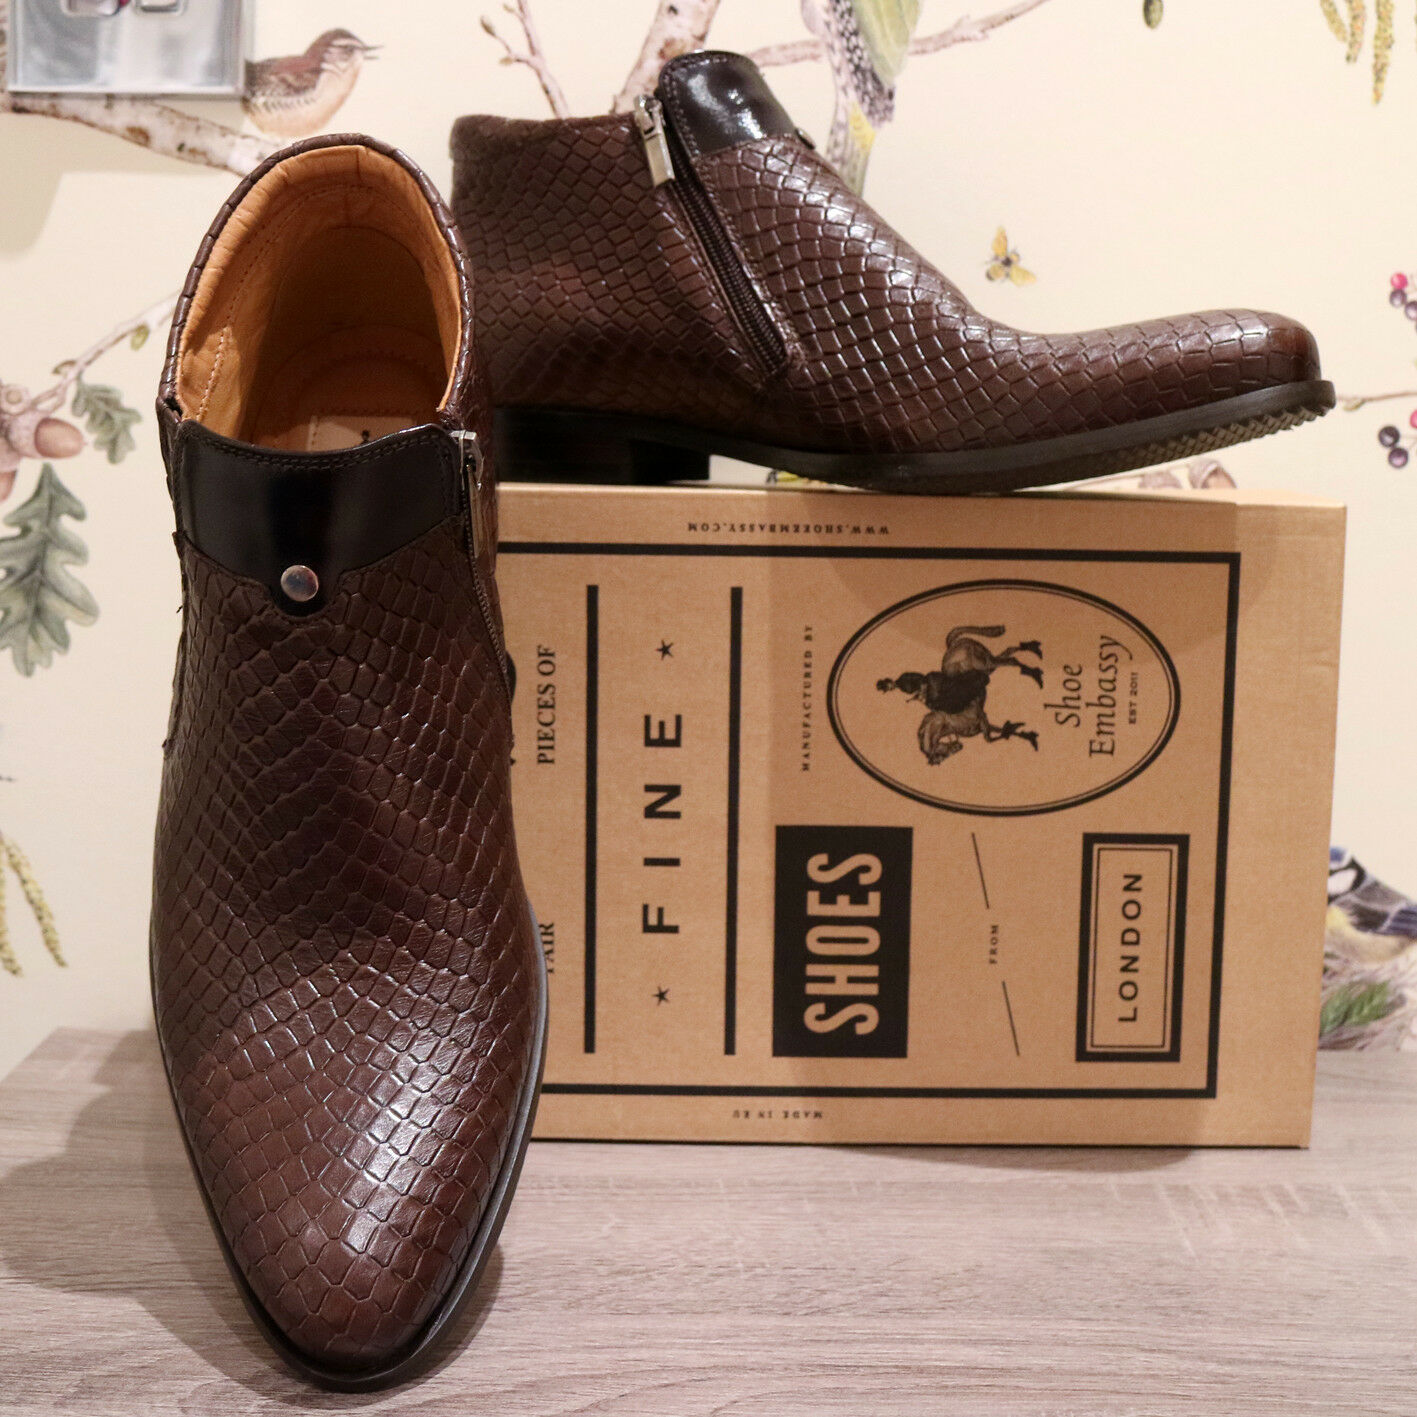 Shoe Embassy Men Brown Leather Smart Ankle Boots Shoes 42 EU Fit 10 UK